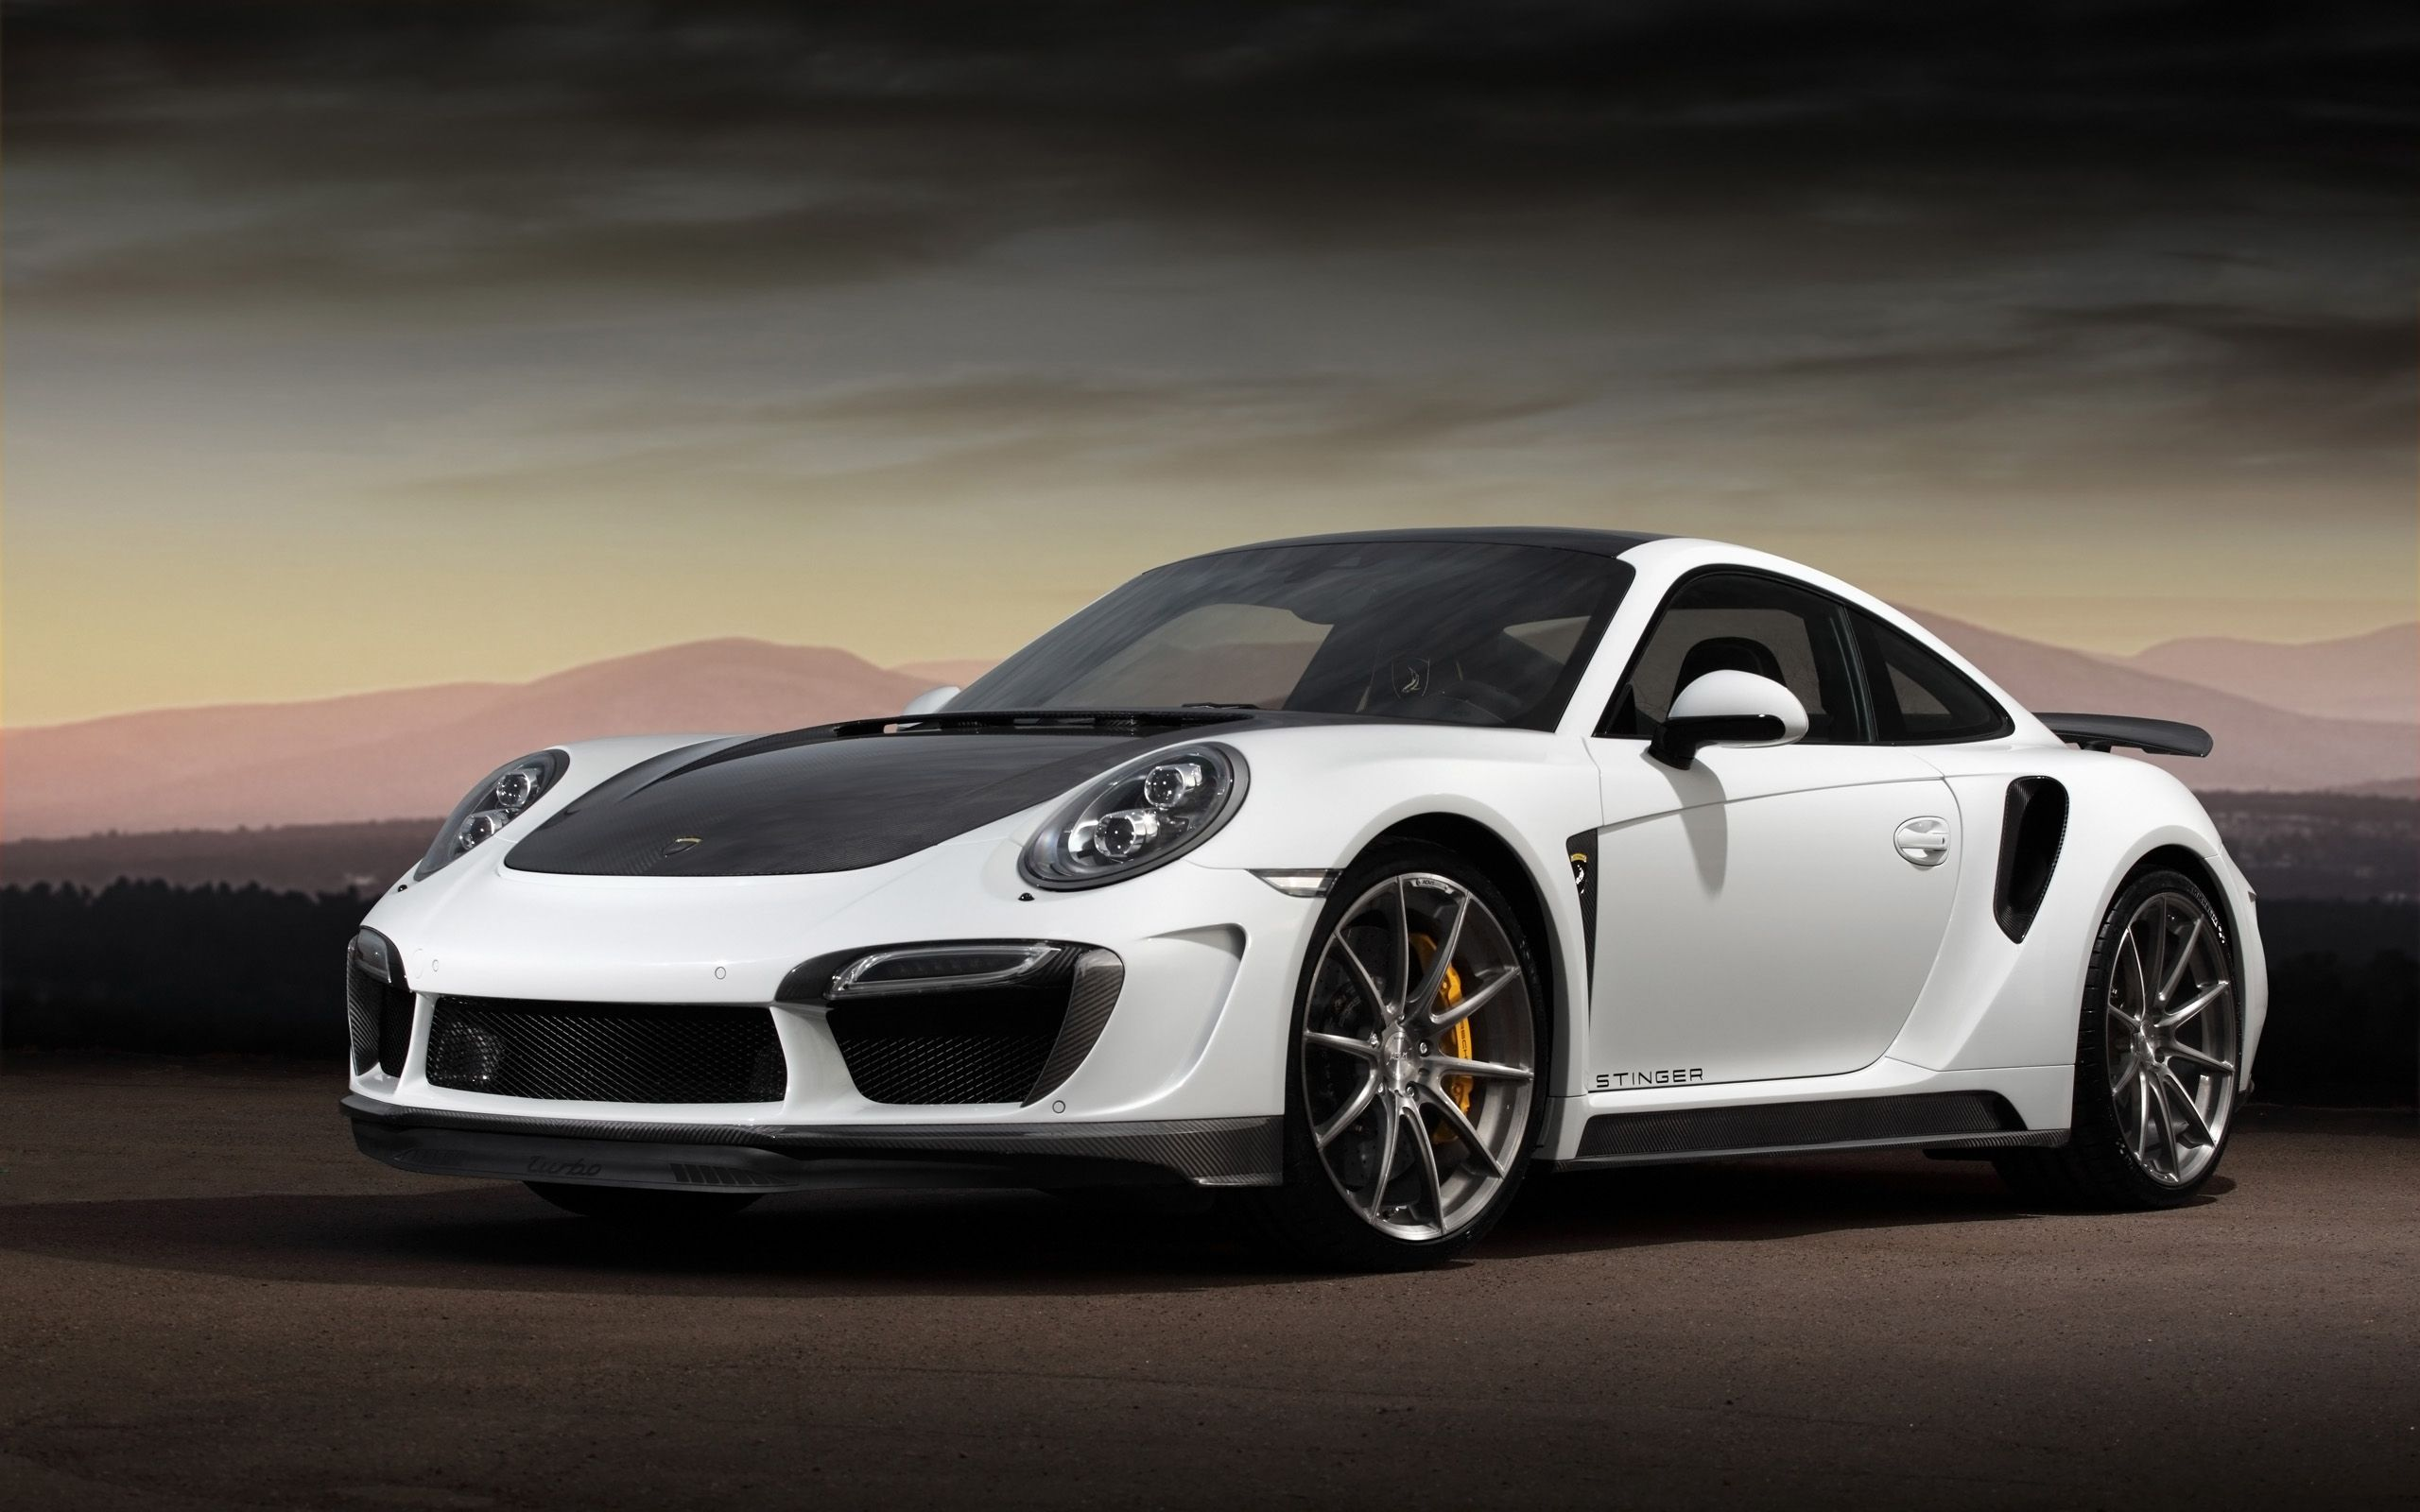 2015 topcar porsche 991 turbo stinger gtr car hd wallpaper in full hd from the cars category